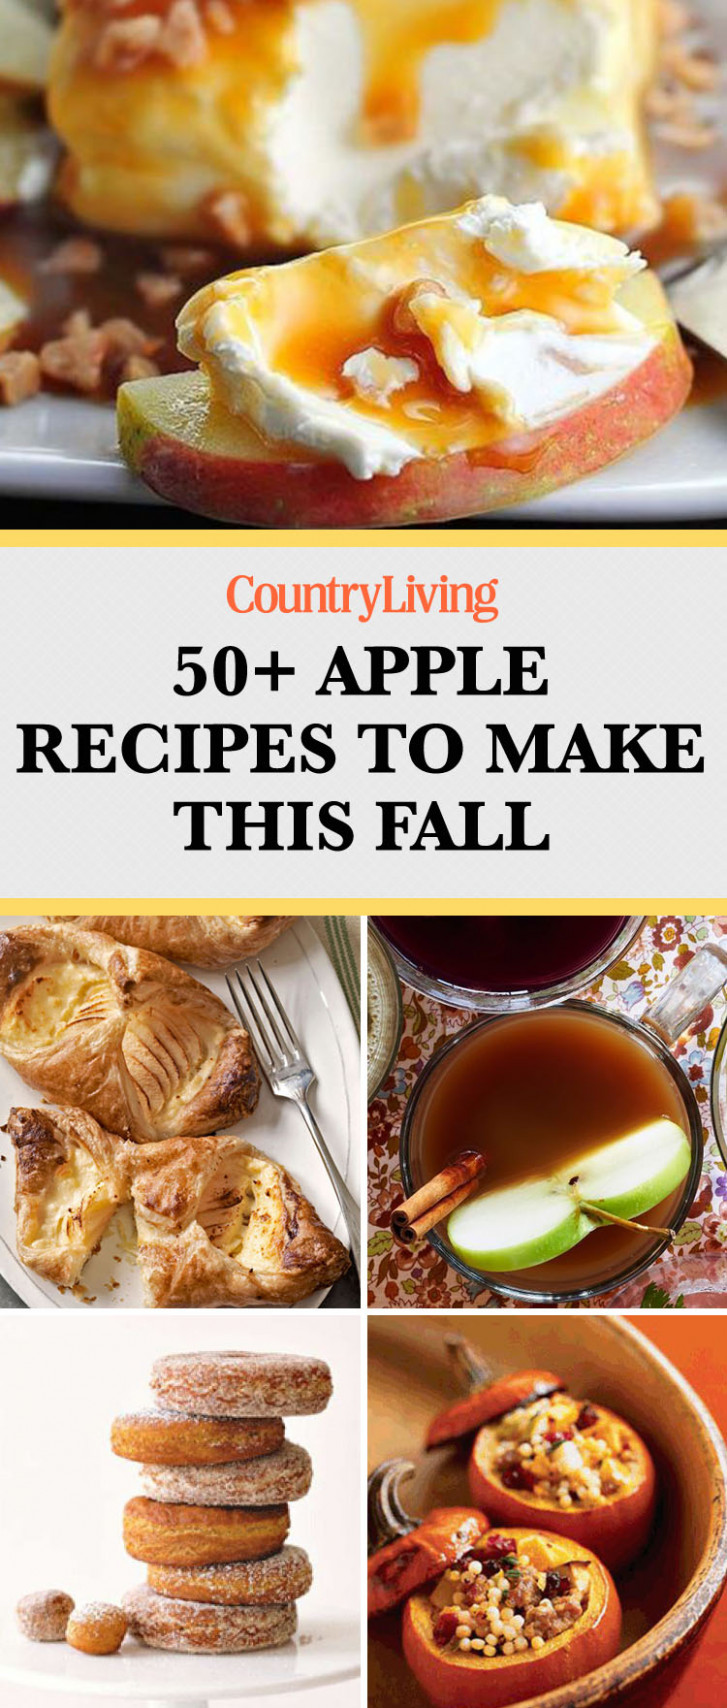 55+ Easy Apple Recipes – What To Do With Apples